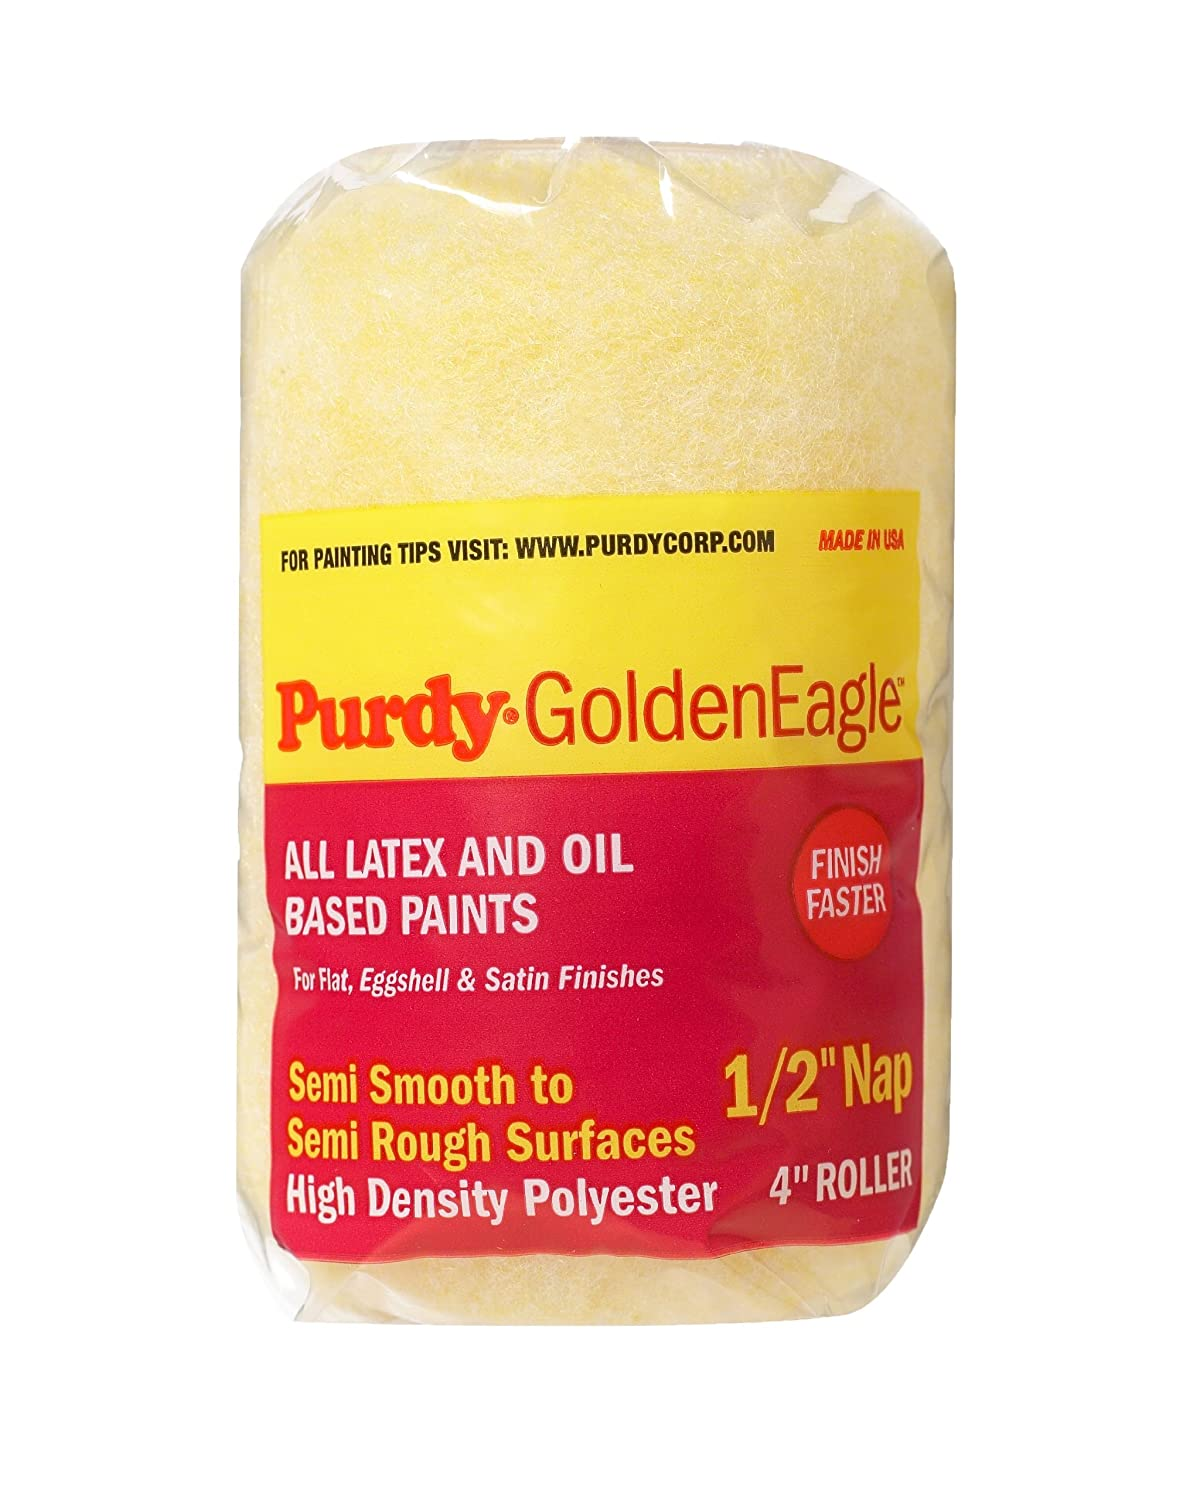 Purdy 140786604 Golden Eagle Roller Cover, 4 inch x 1/2 inch nap